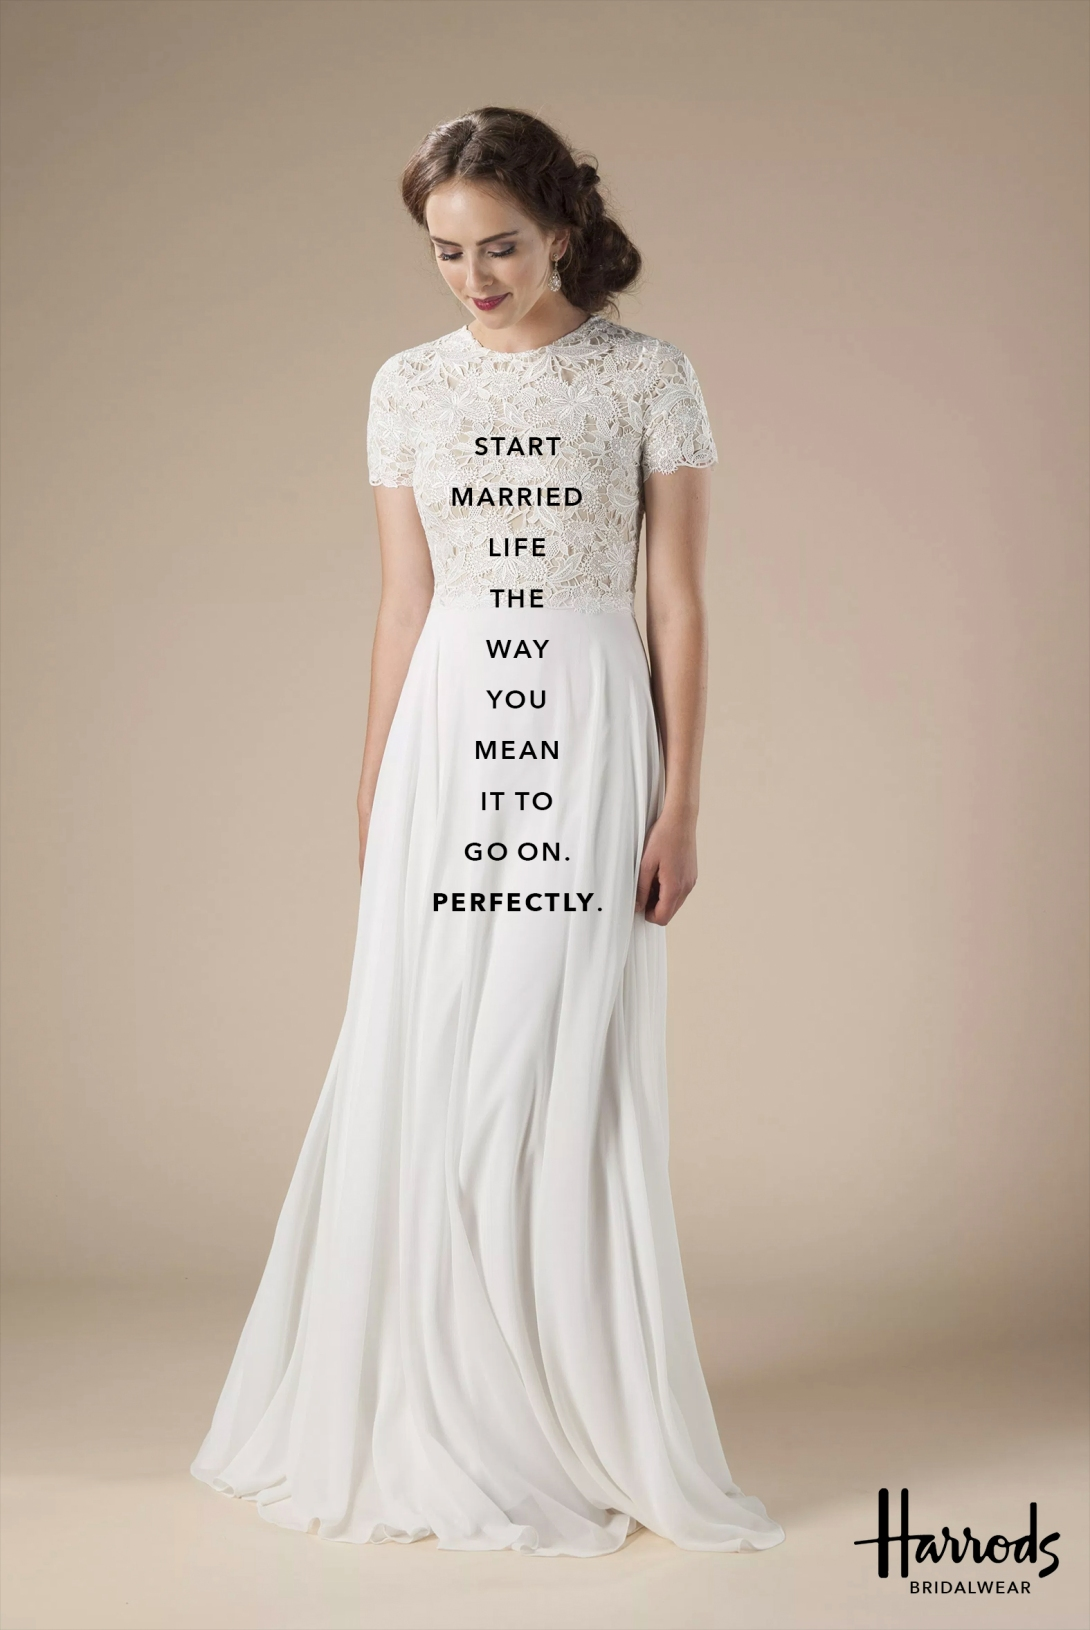 quick advertising concept for a bridal wear brand - start married life the way you mean it to go on - perfectly